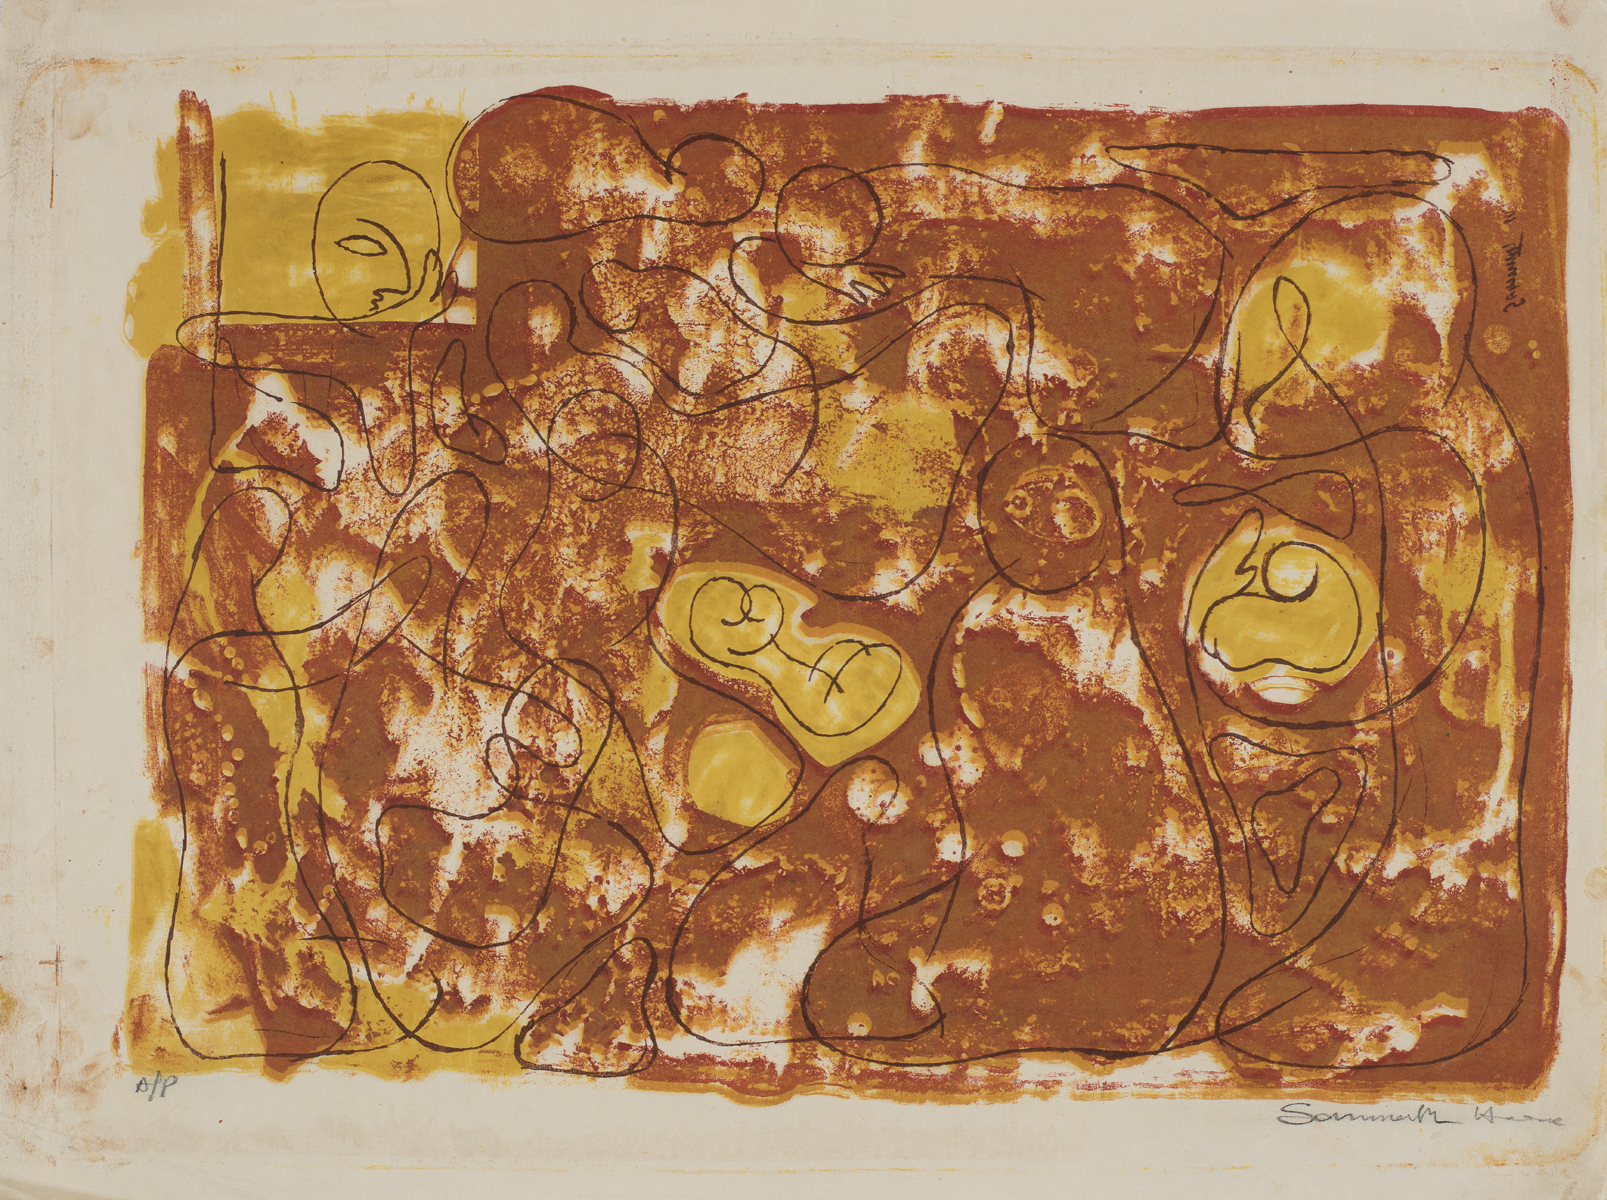 UNTITLED (Abstract with figures)